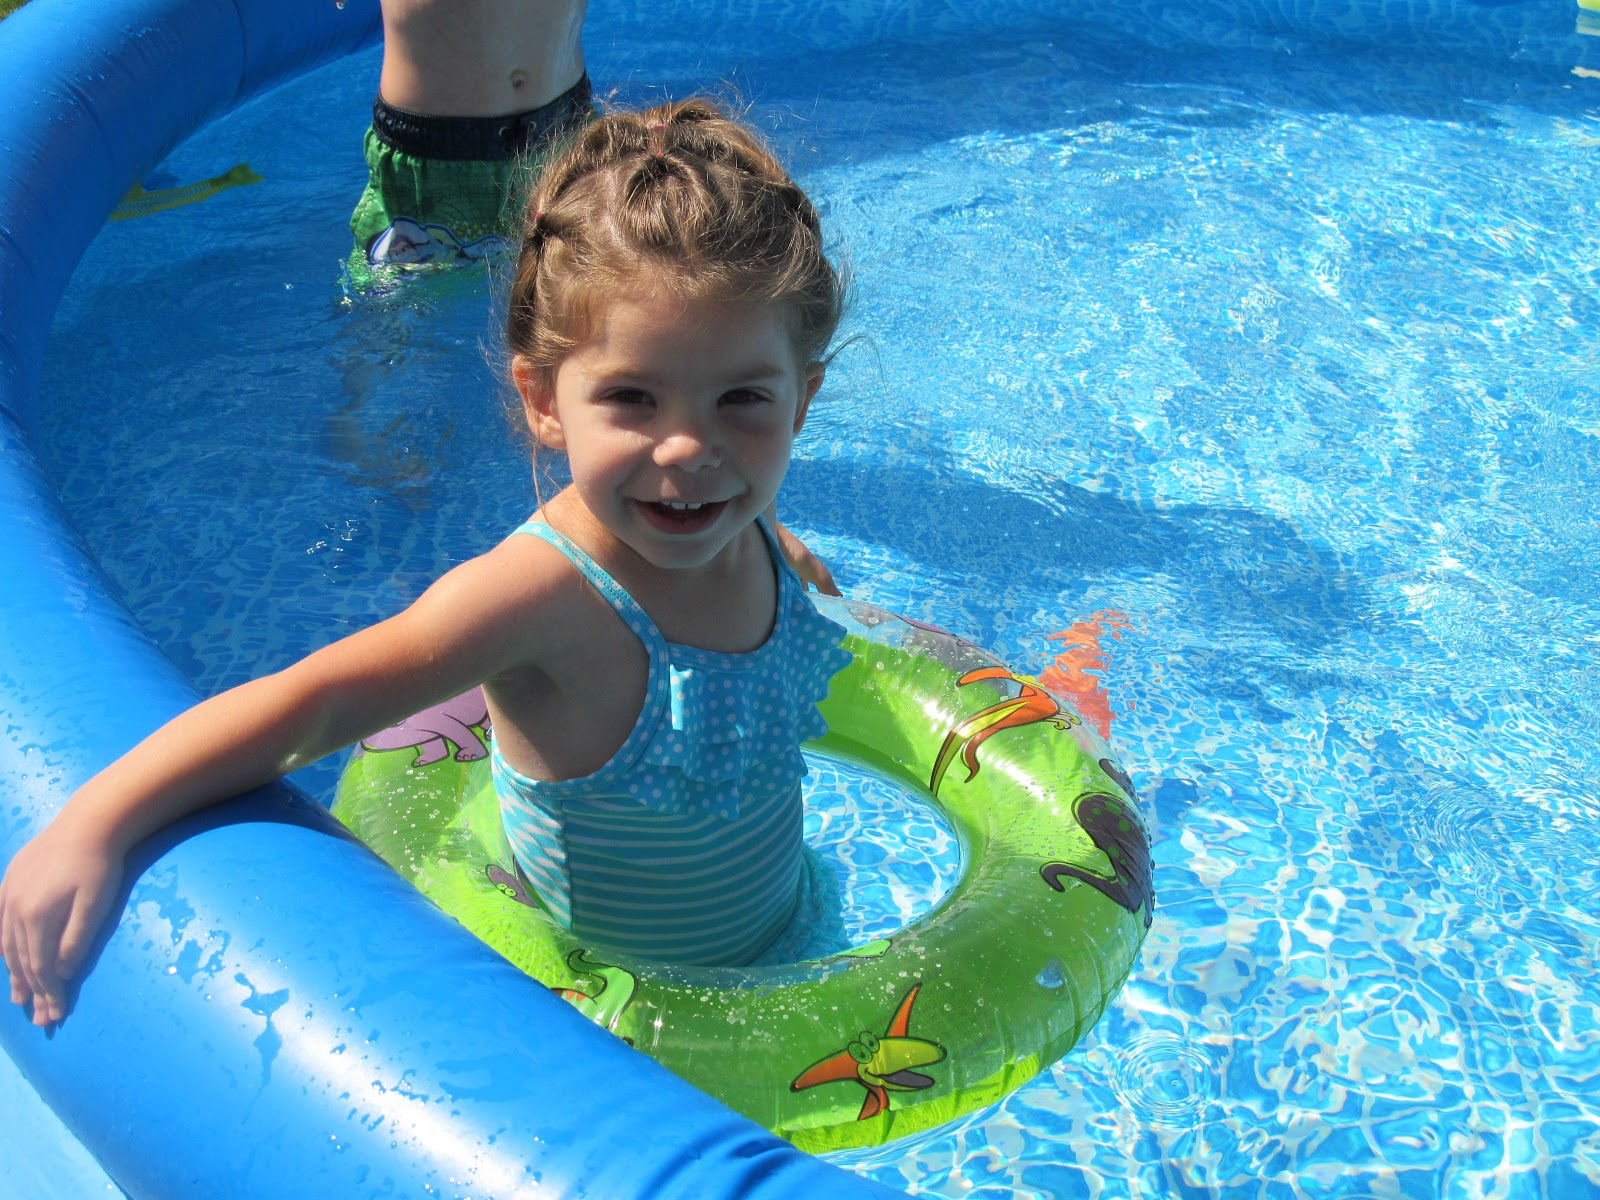 The miller family idaho trip 1 water fun - Sarah dray ...